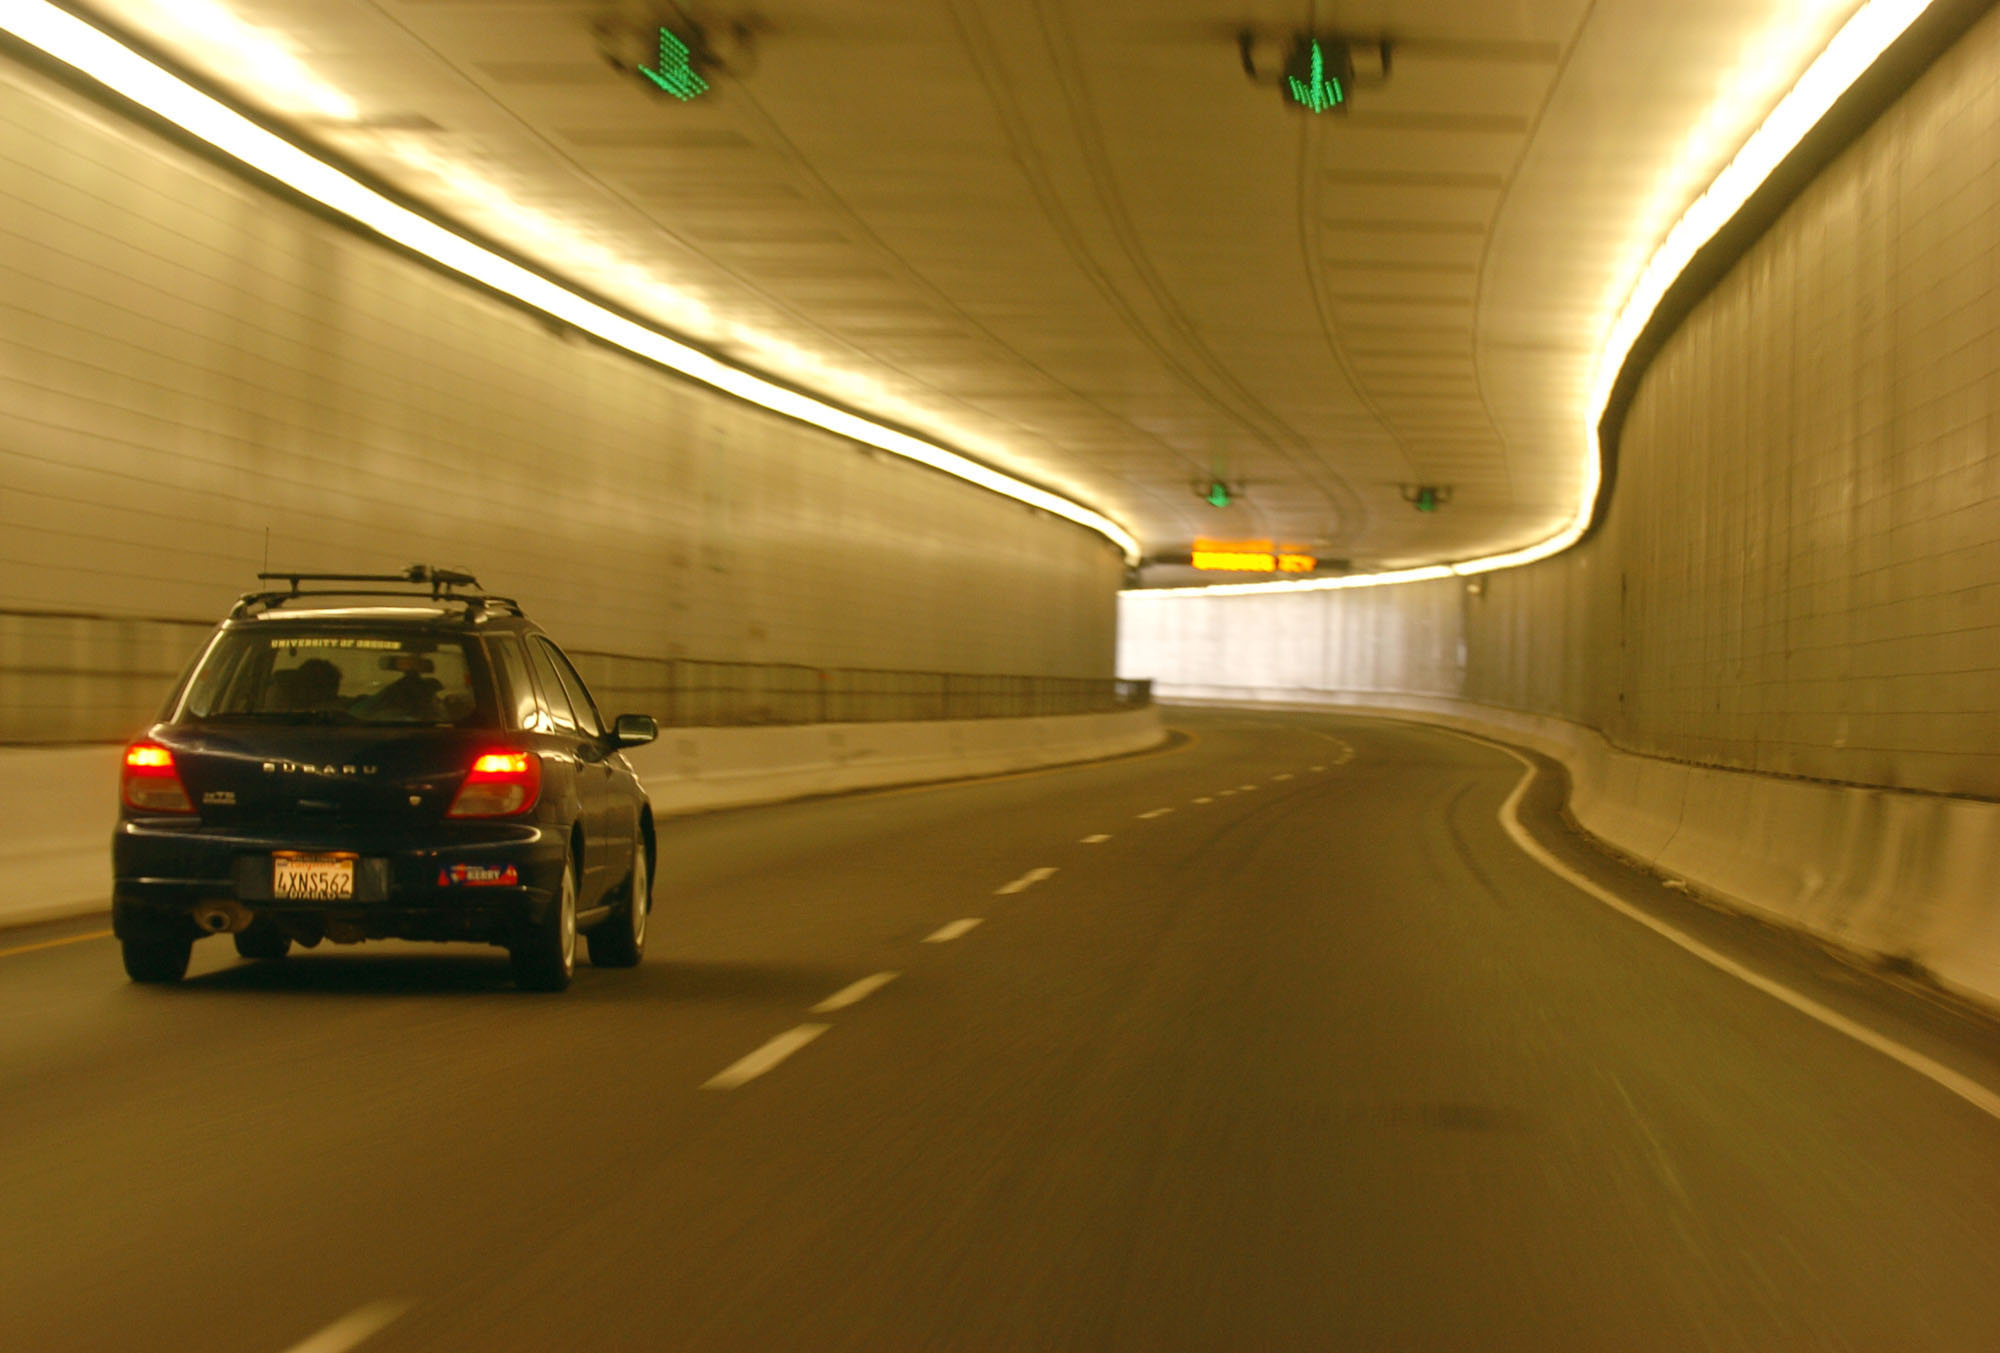 <p>An automobile passes through the Eisenhower Tunnel on Interstate 70 in a file photo, near Silverthorne, Colo.</p>